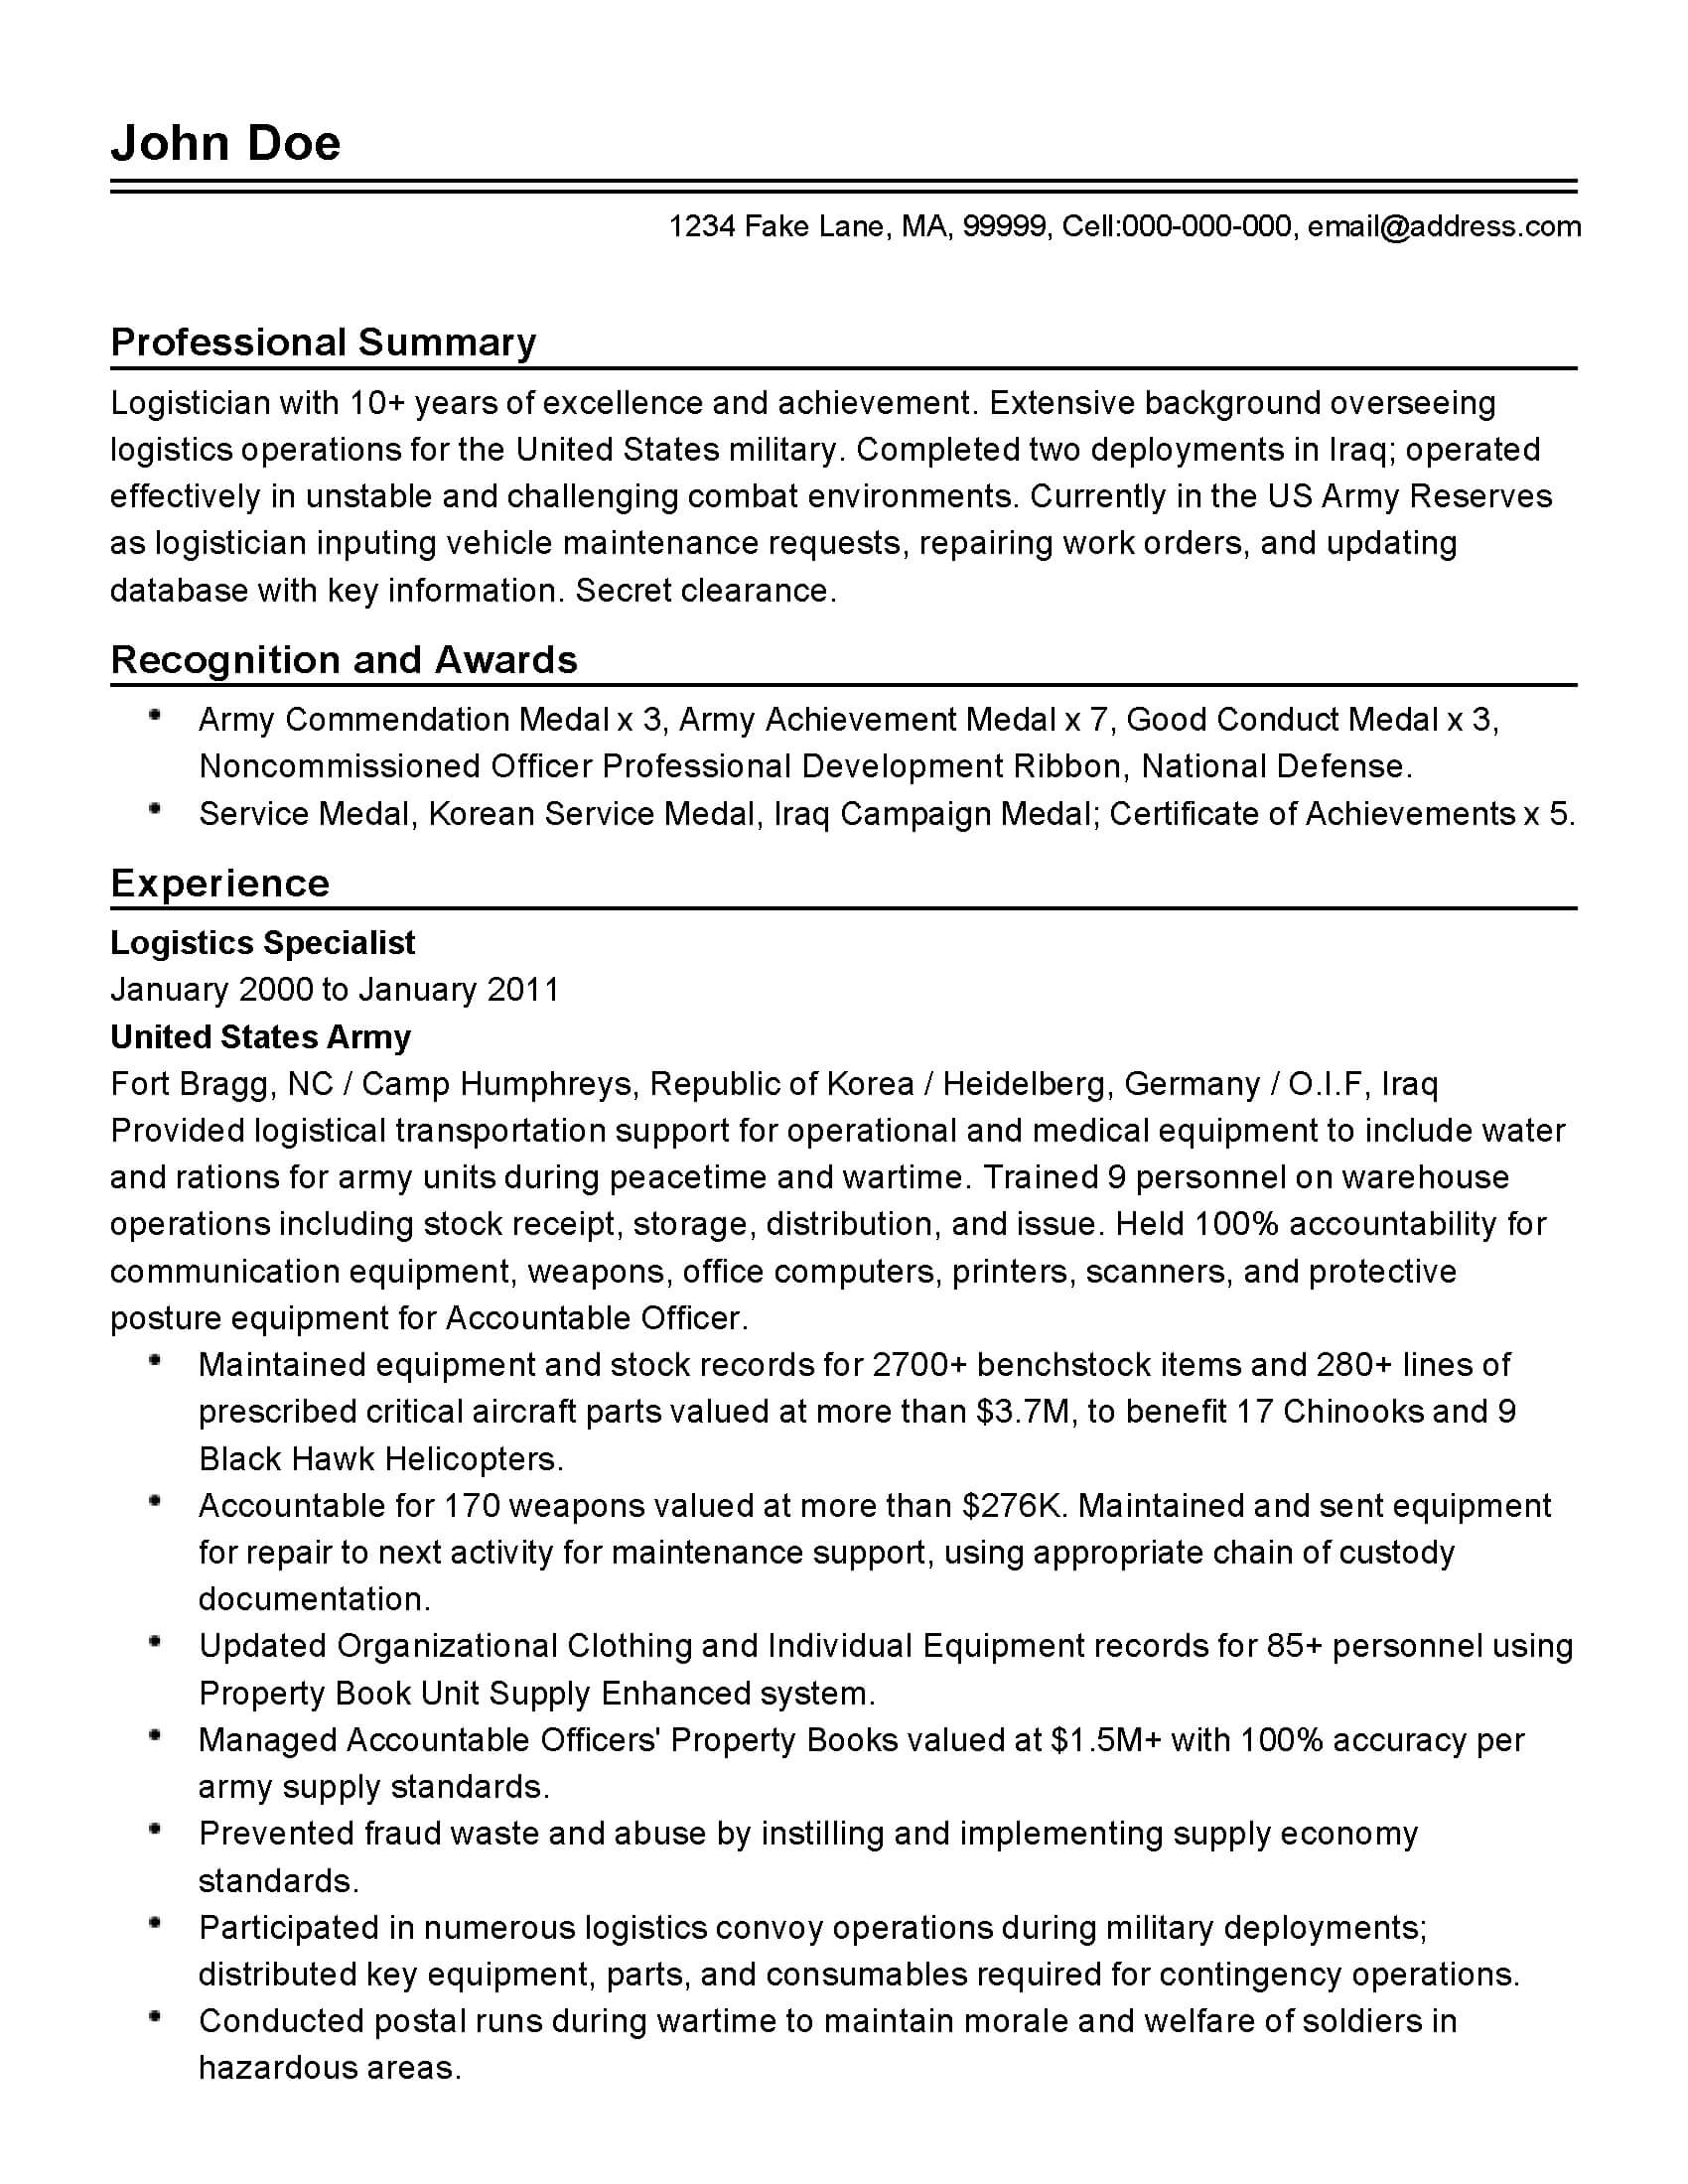 Professional Military Logistician Templates To Showcase Your Throughout Army Good Conduct Medal Certificate Template